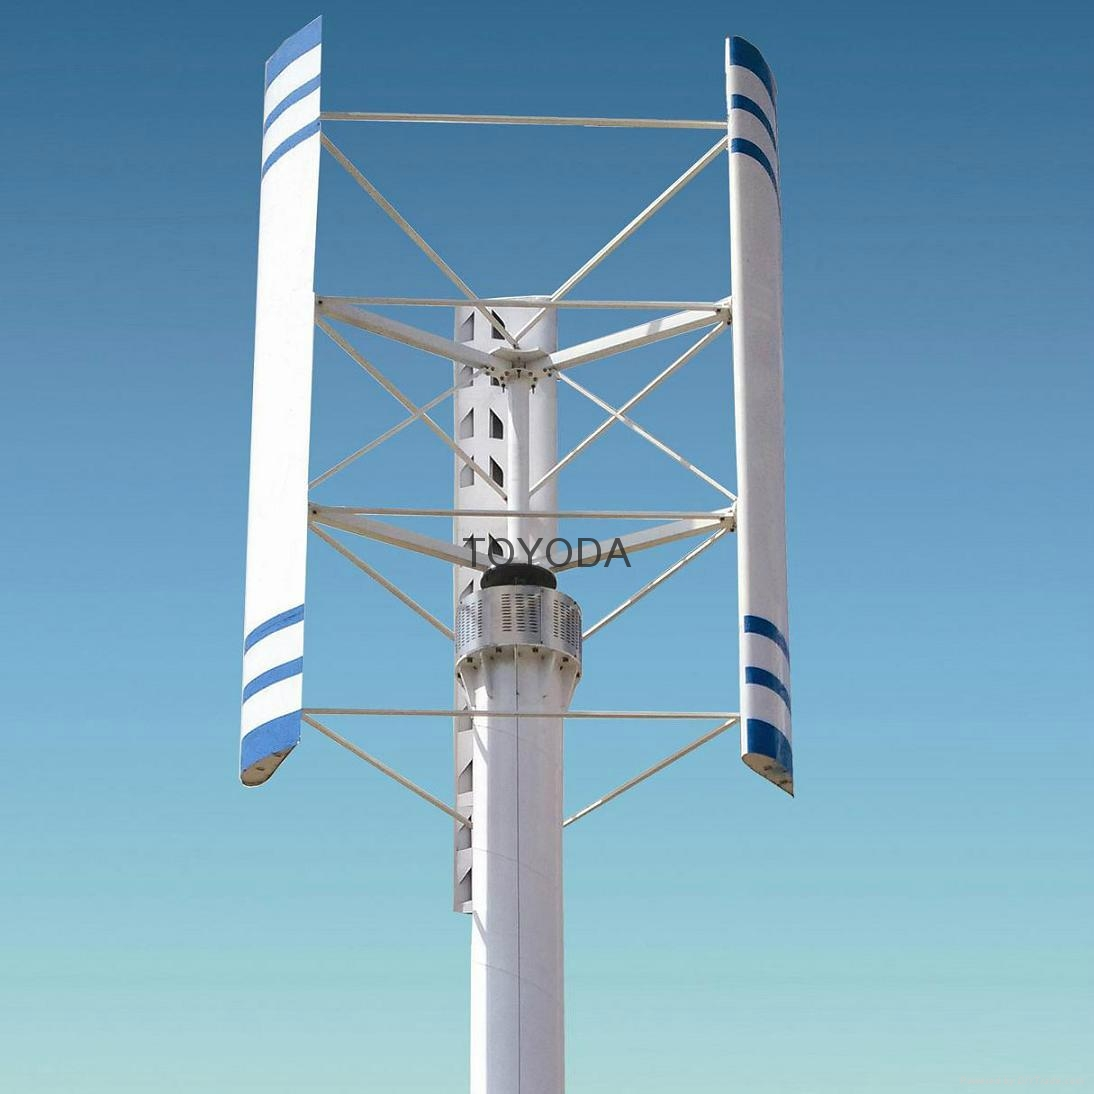 1KW vertical axis wind turbine from TOYODA 1